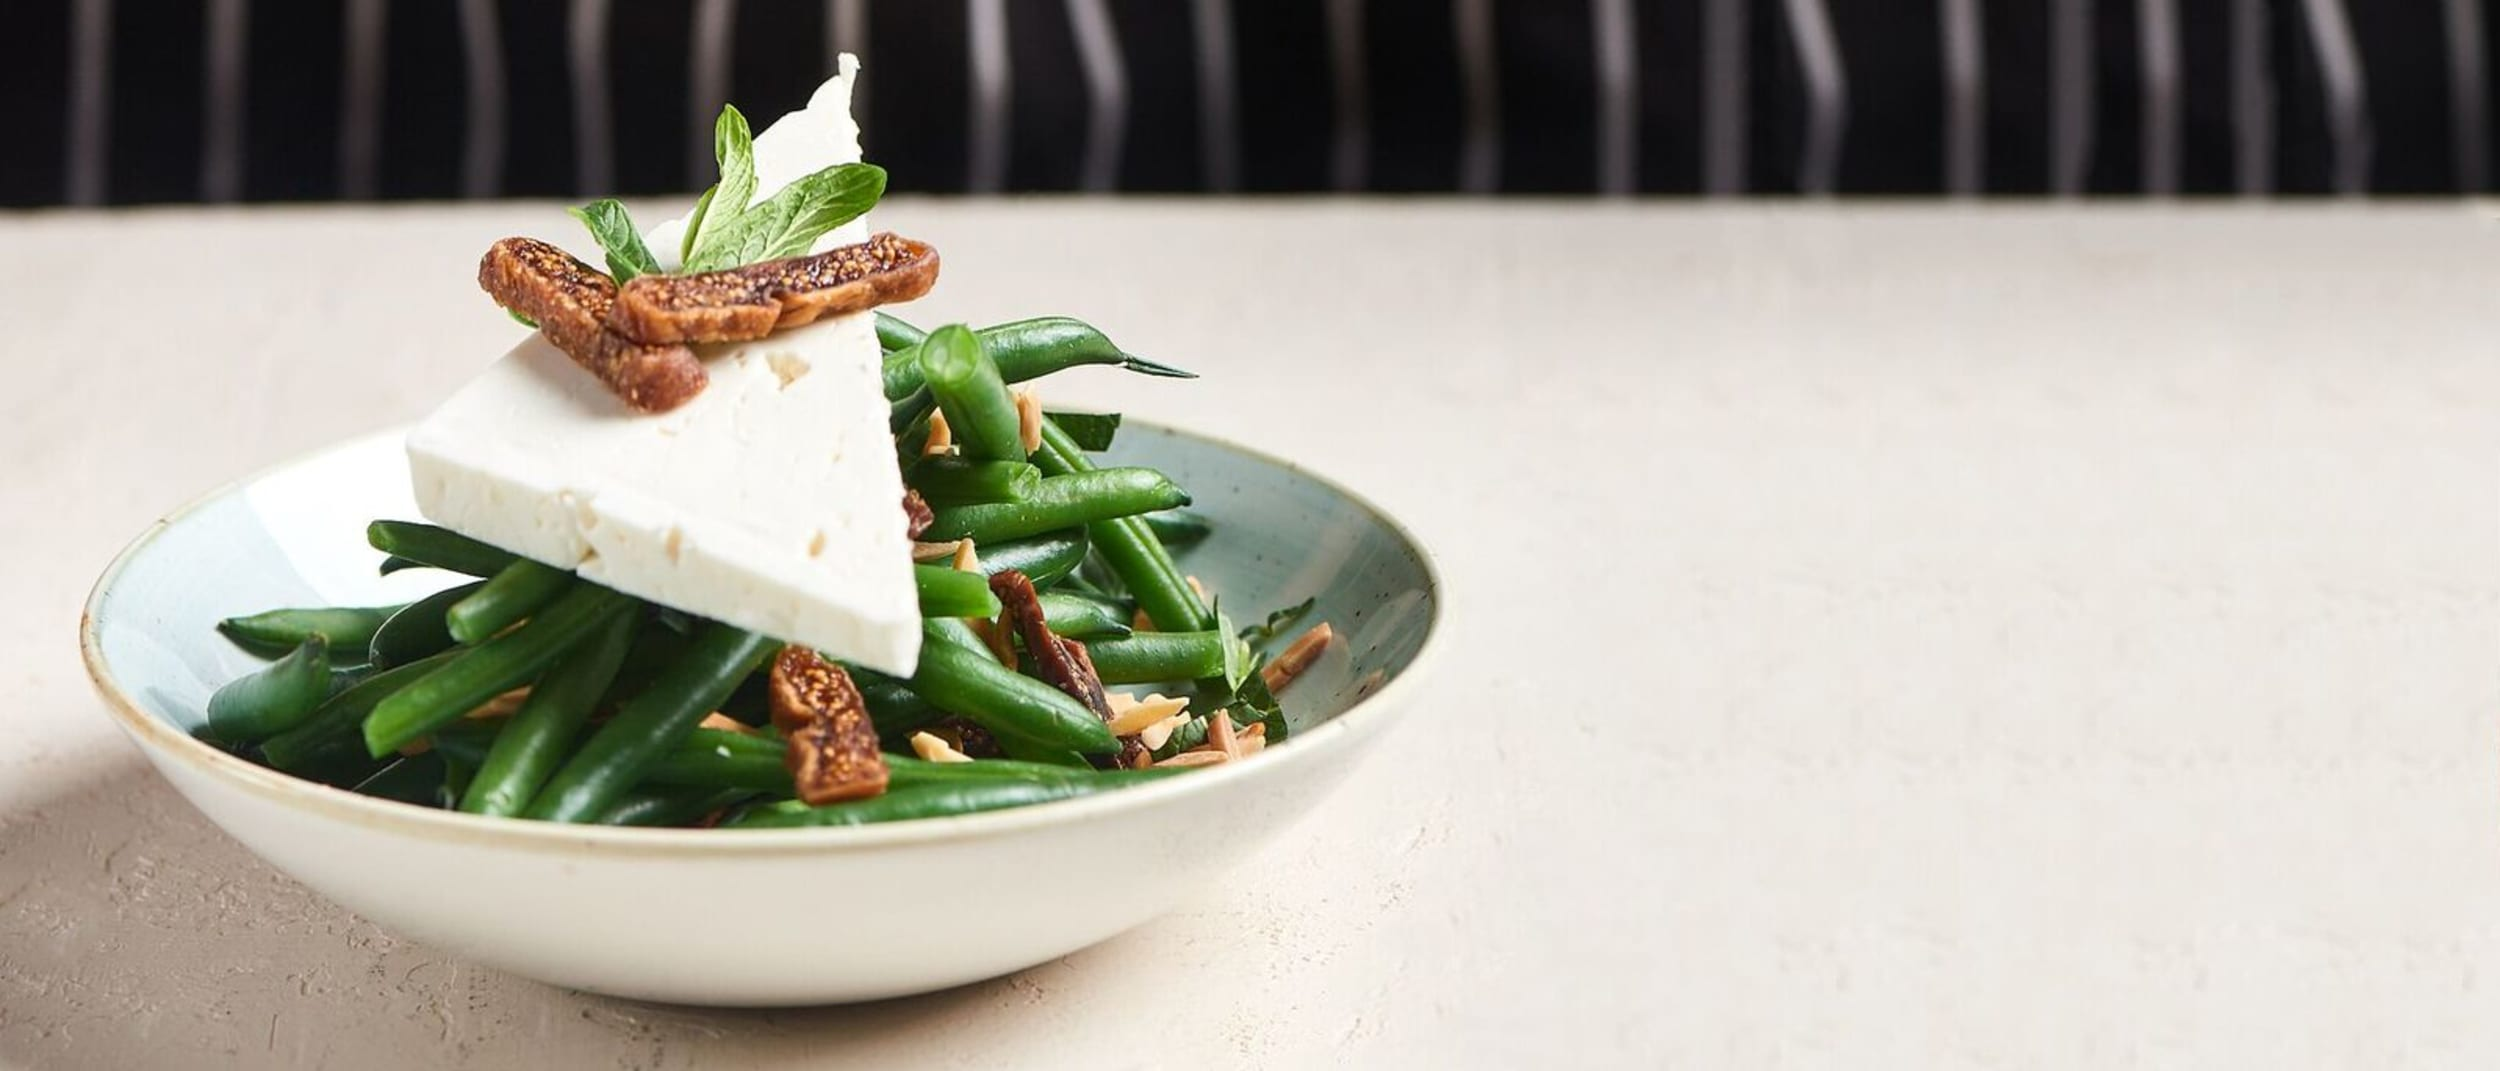 The Green Bean Salad is back for spring at Zeus!